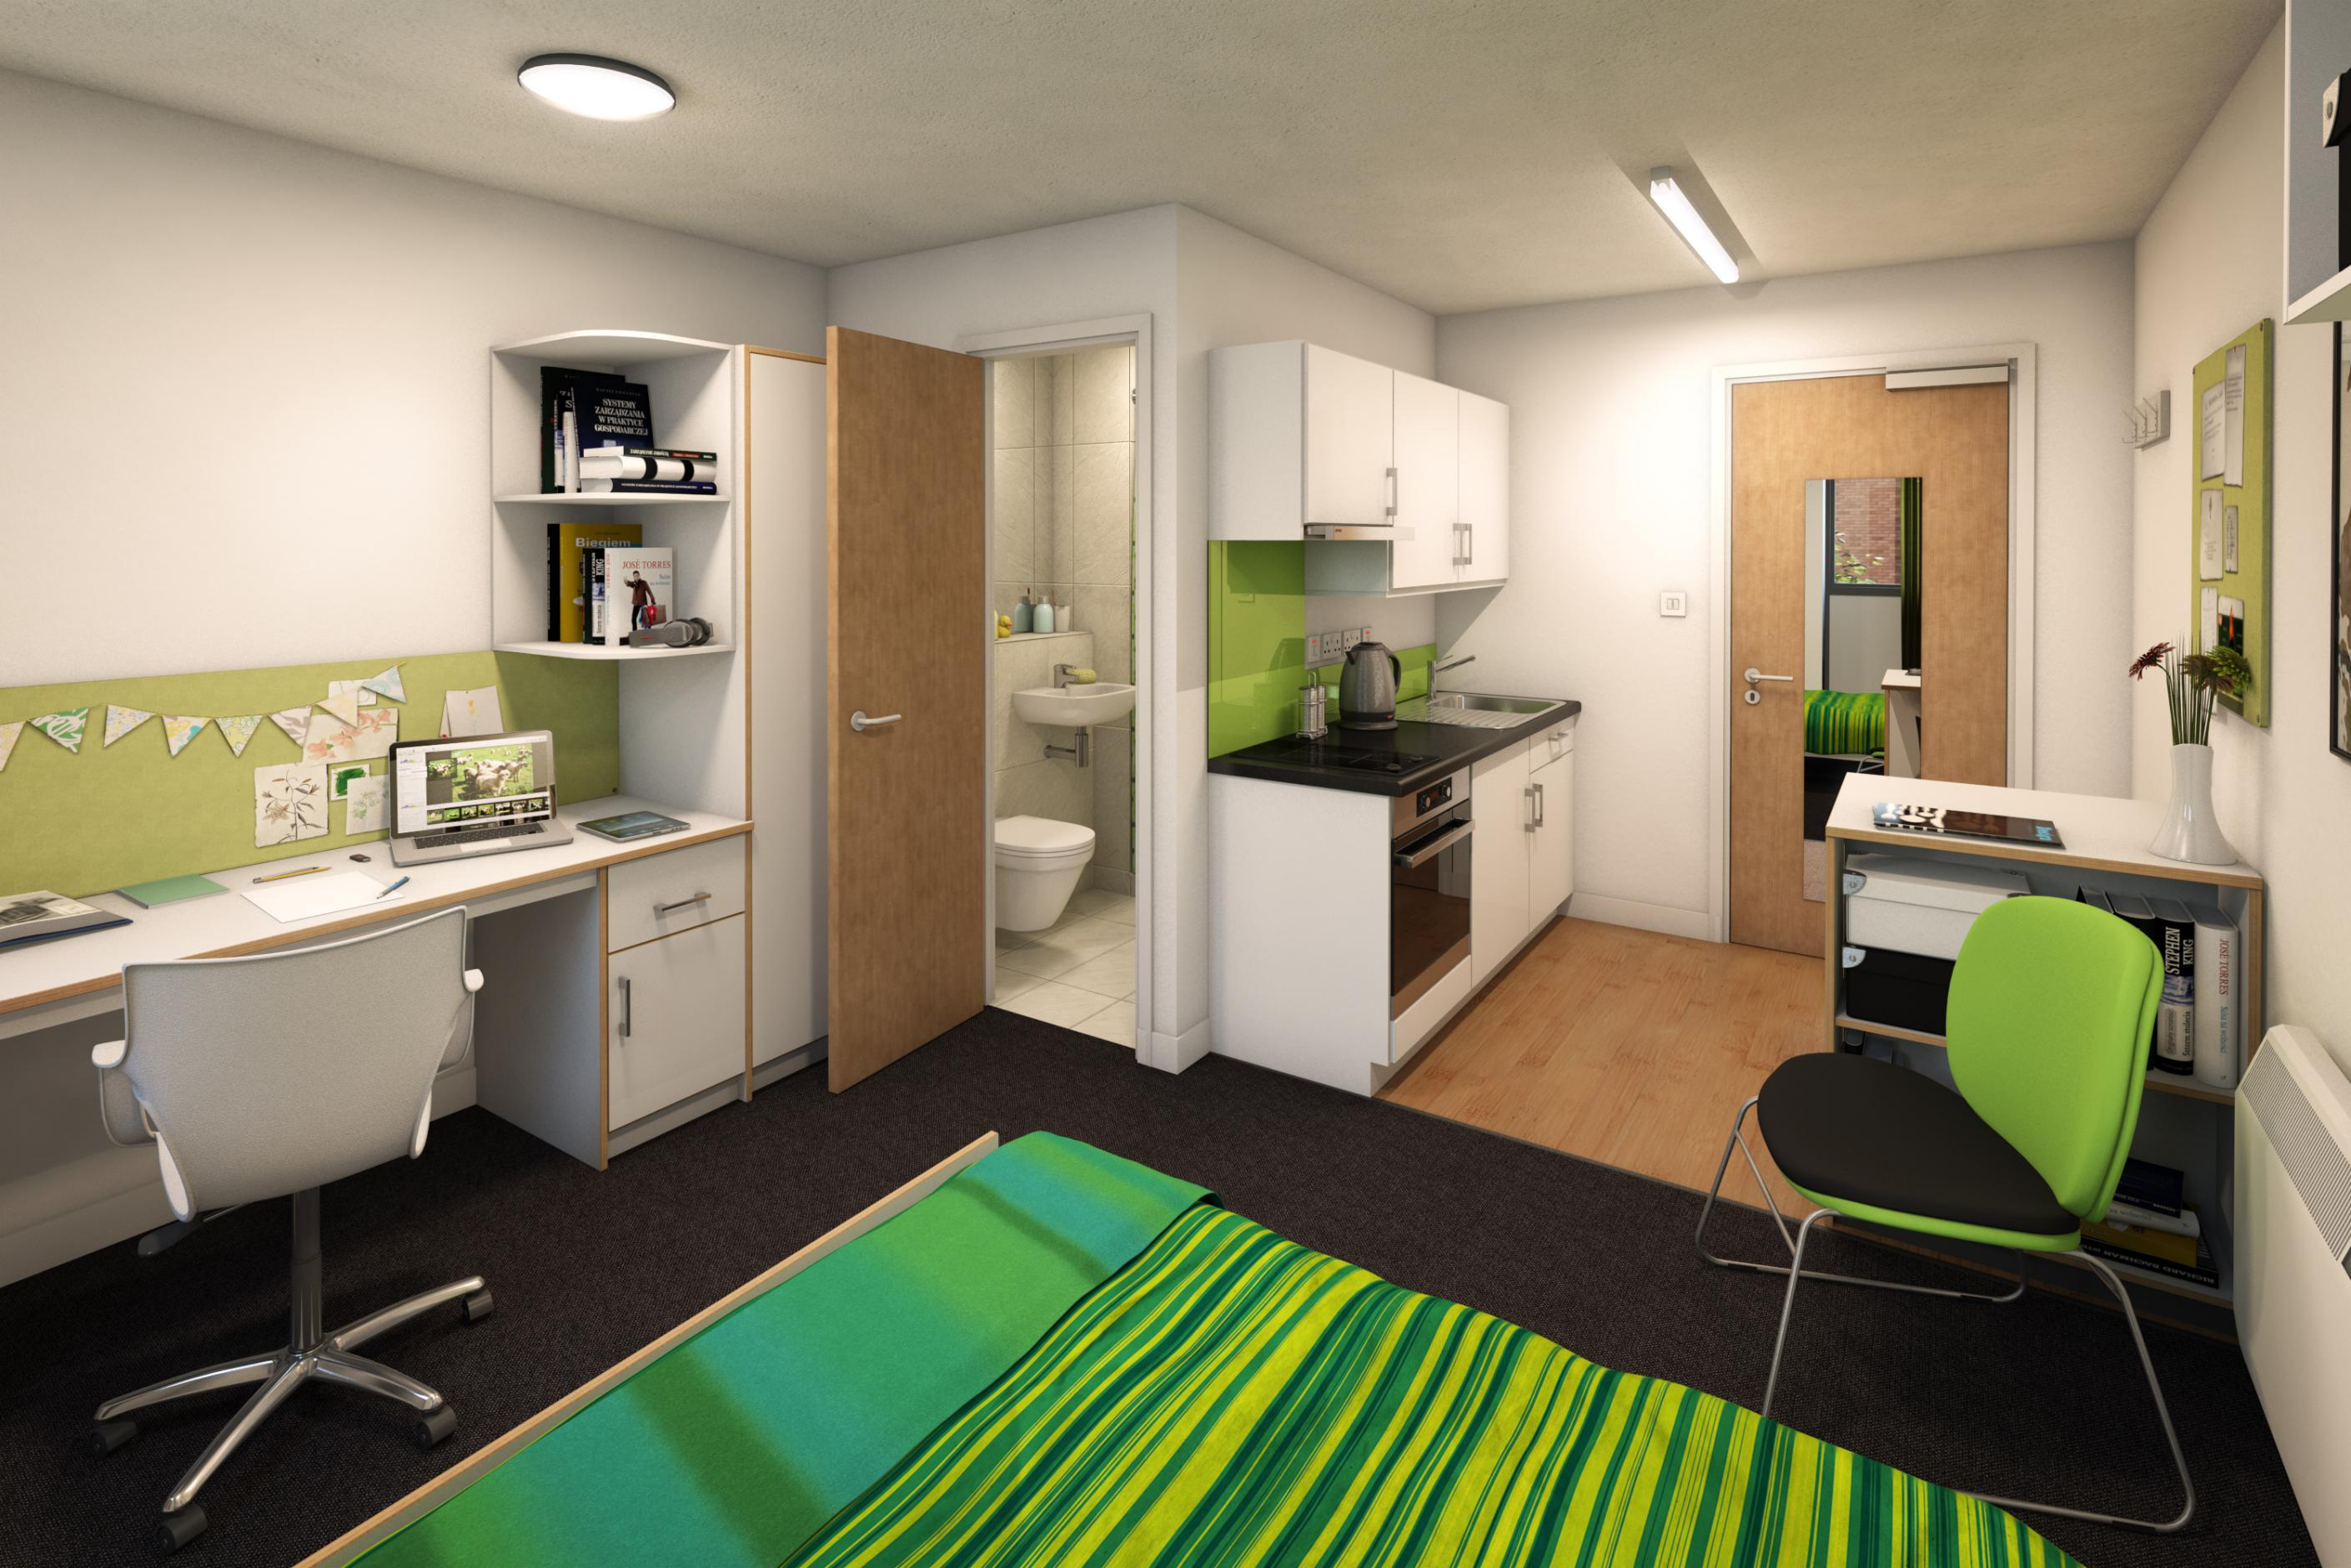 Postgraduate accommodation 2015 the student room for Einrichtungsideen studentenzimmer